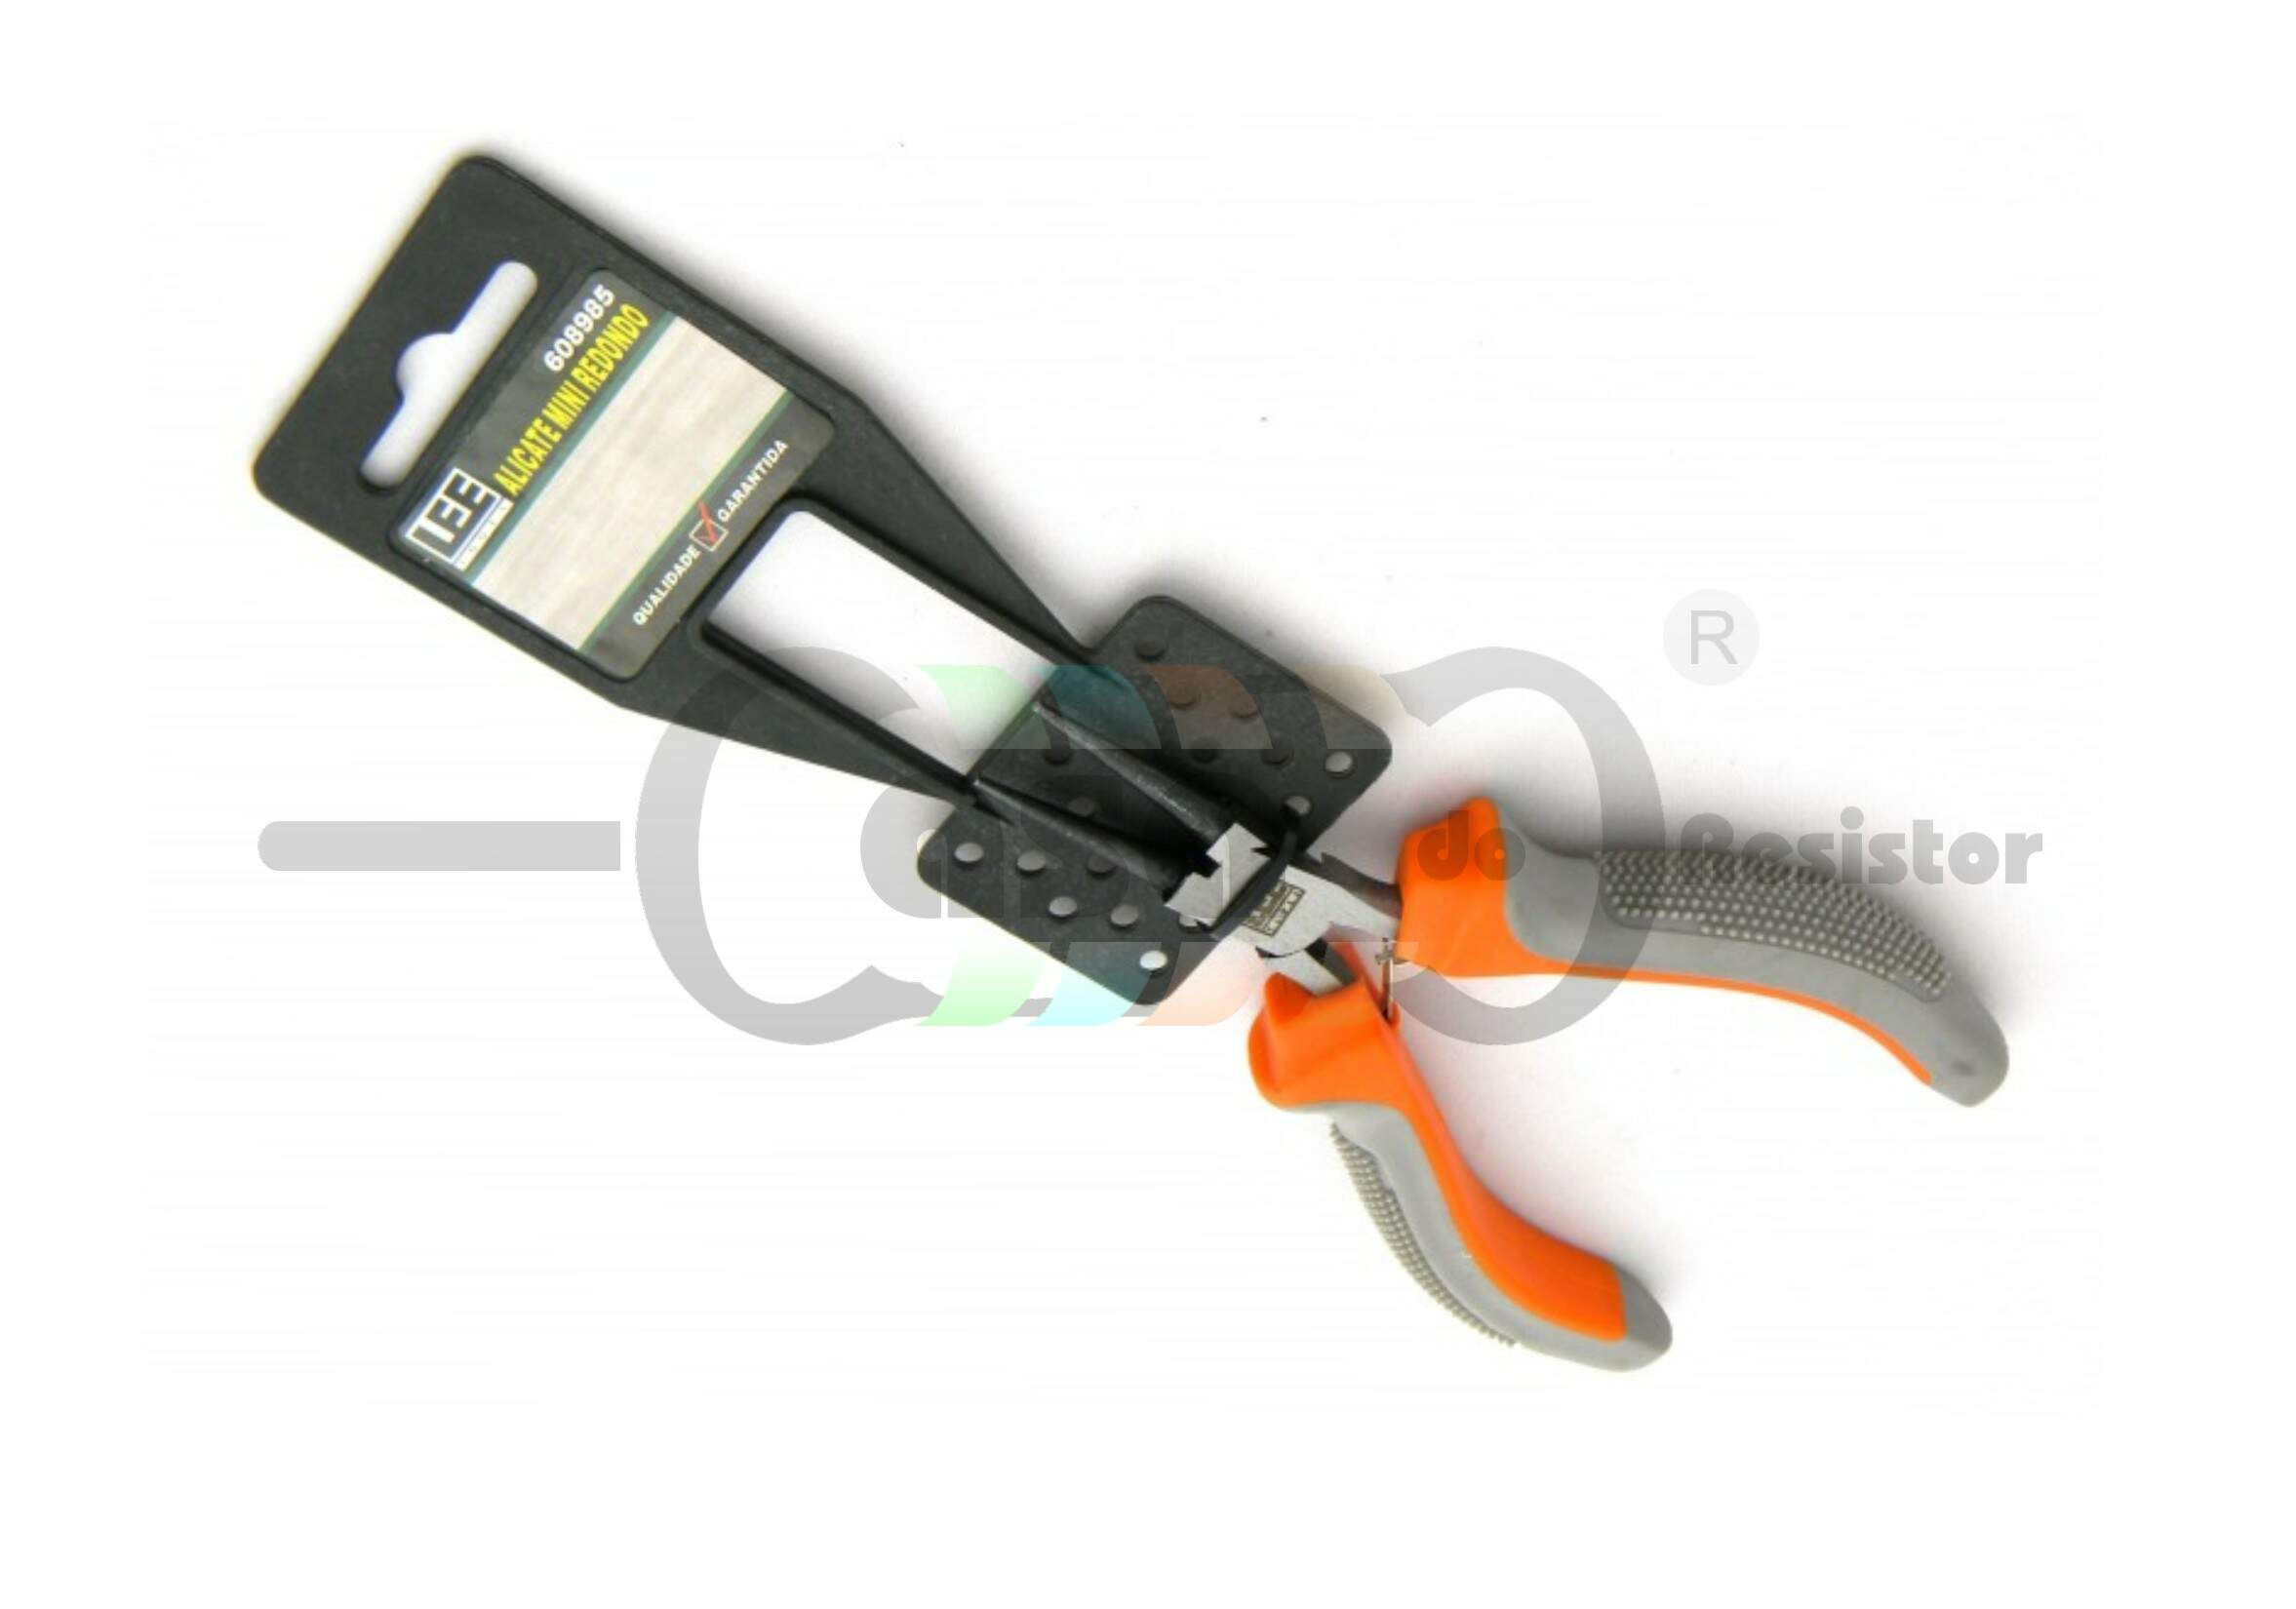 Alicate bico redondo LEE TOOLS (ZFLP0036)